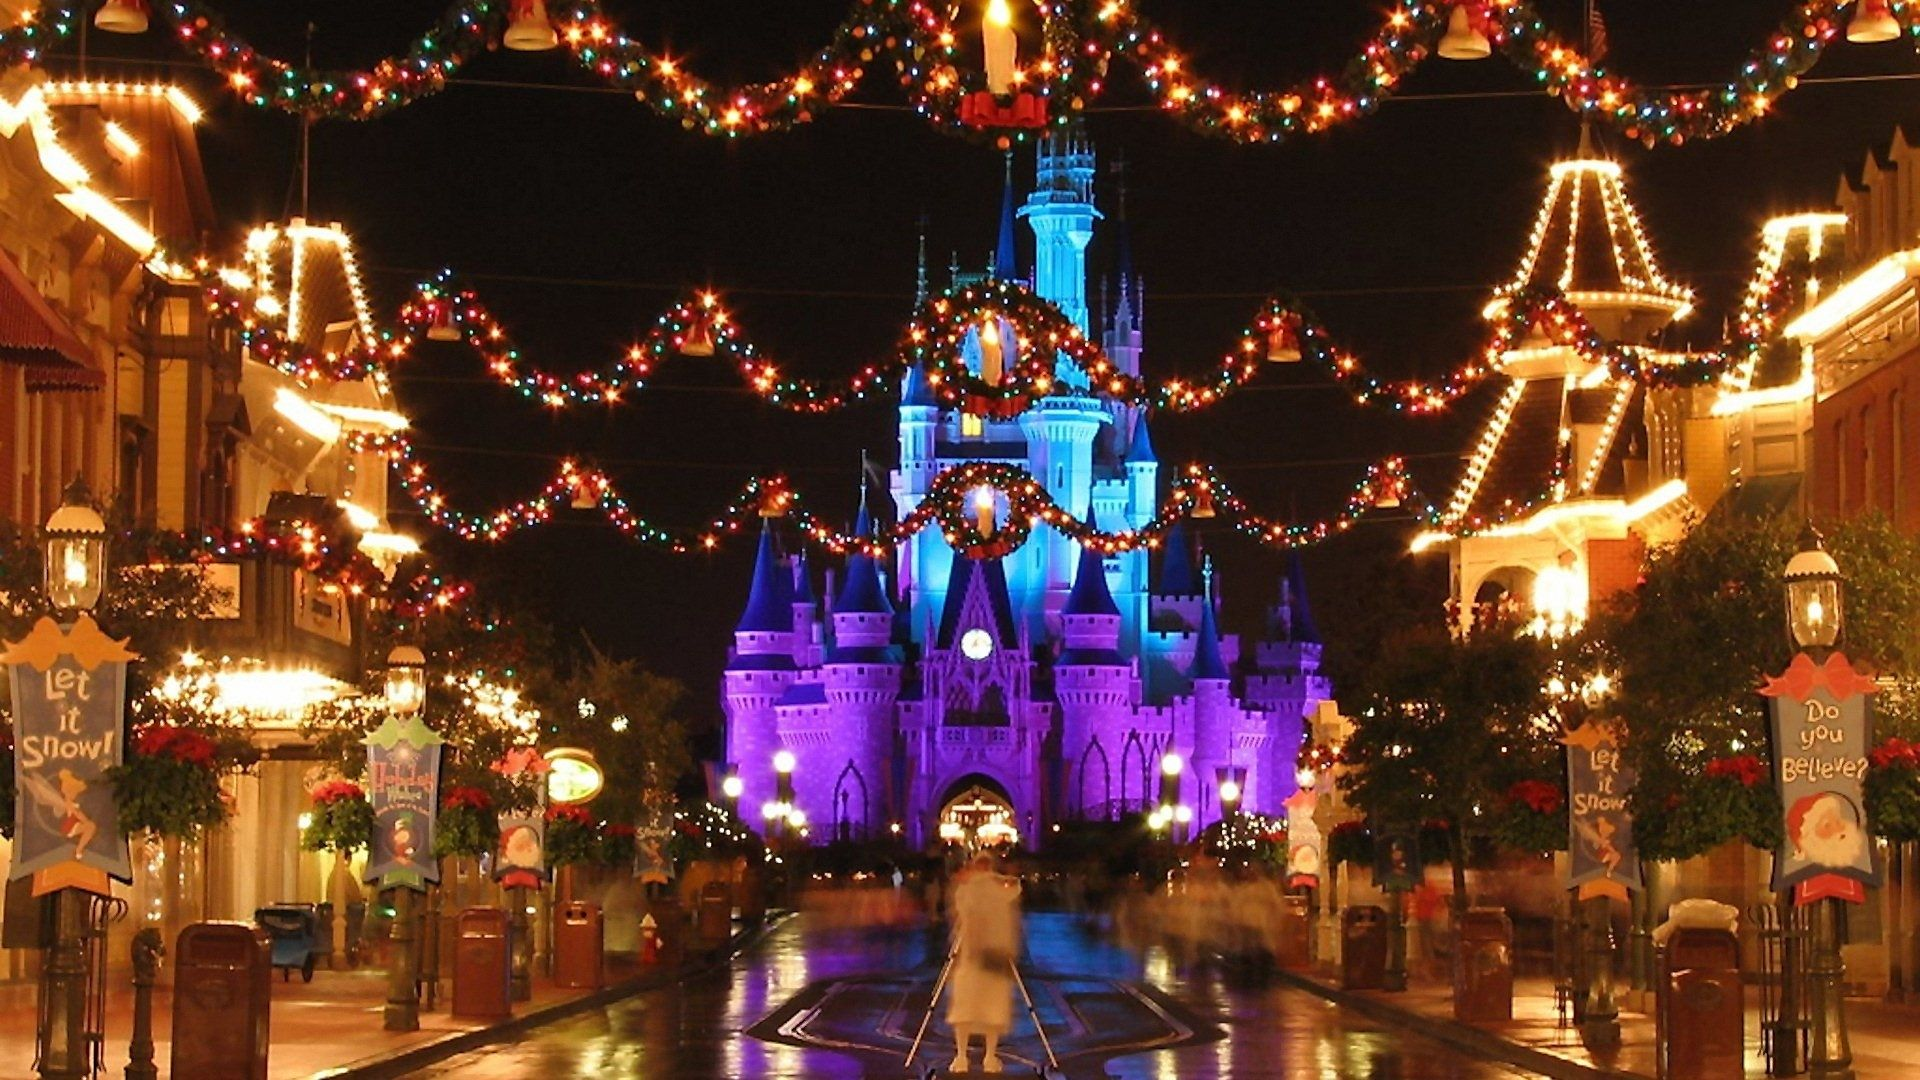 10 Latest Disney World Christmas Wallpaper Full Hd 1920 1080 For Pc Desktop Disney World Christmas Christmas Desktop Christmas Wallpaper